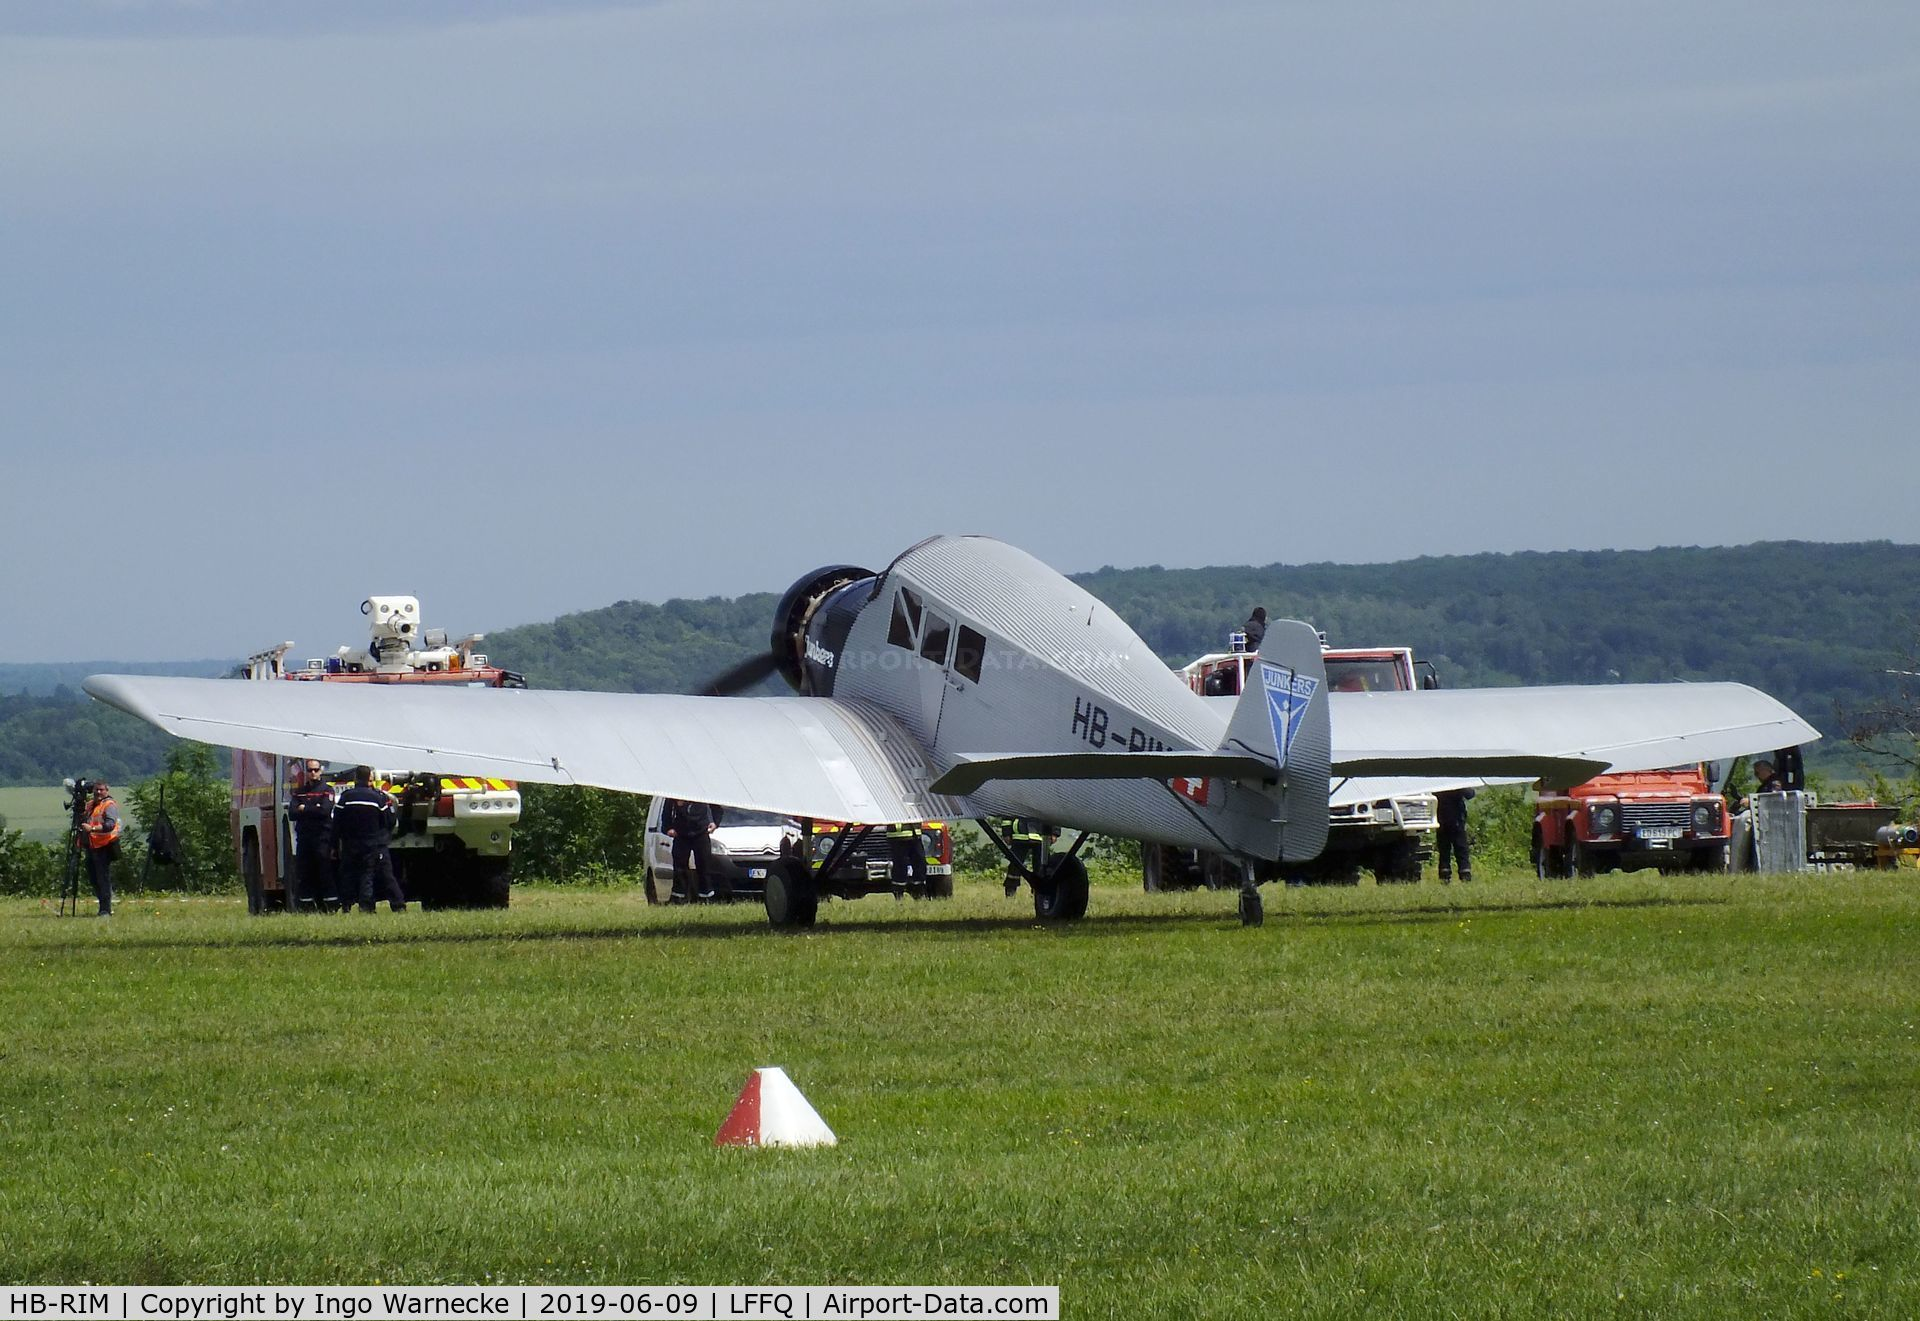 HB-RIM, 2015 Rimowa/Junkers F-13 C/N 1, Rimowa / Junkers F 13 replica (with radial engine) at the Meeting Aerien 2019, La-Ferte-Alais